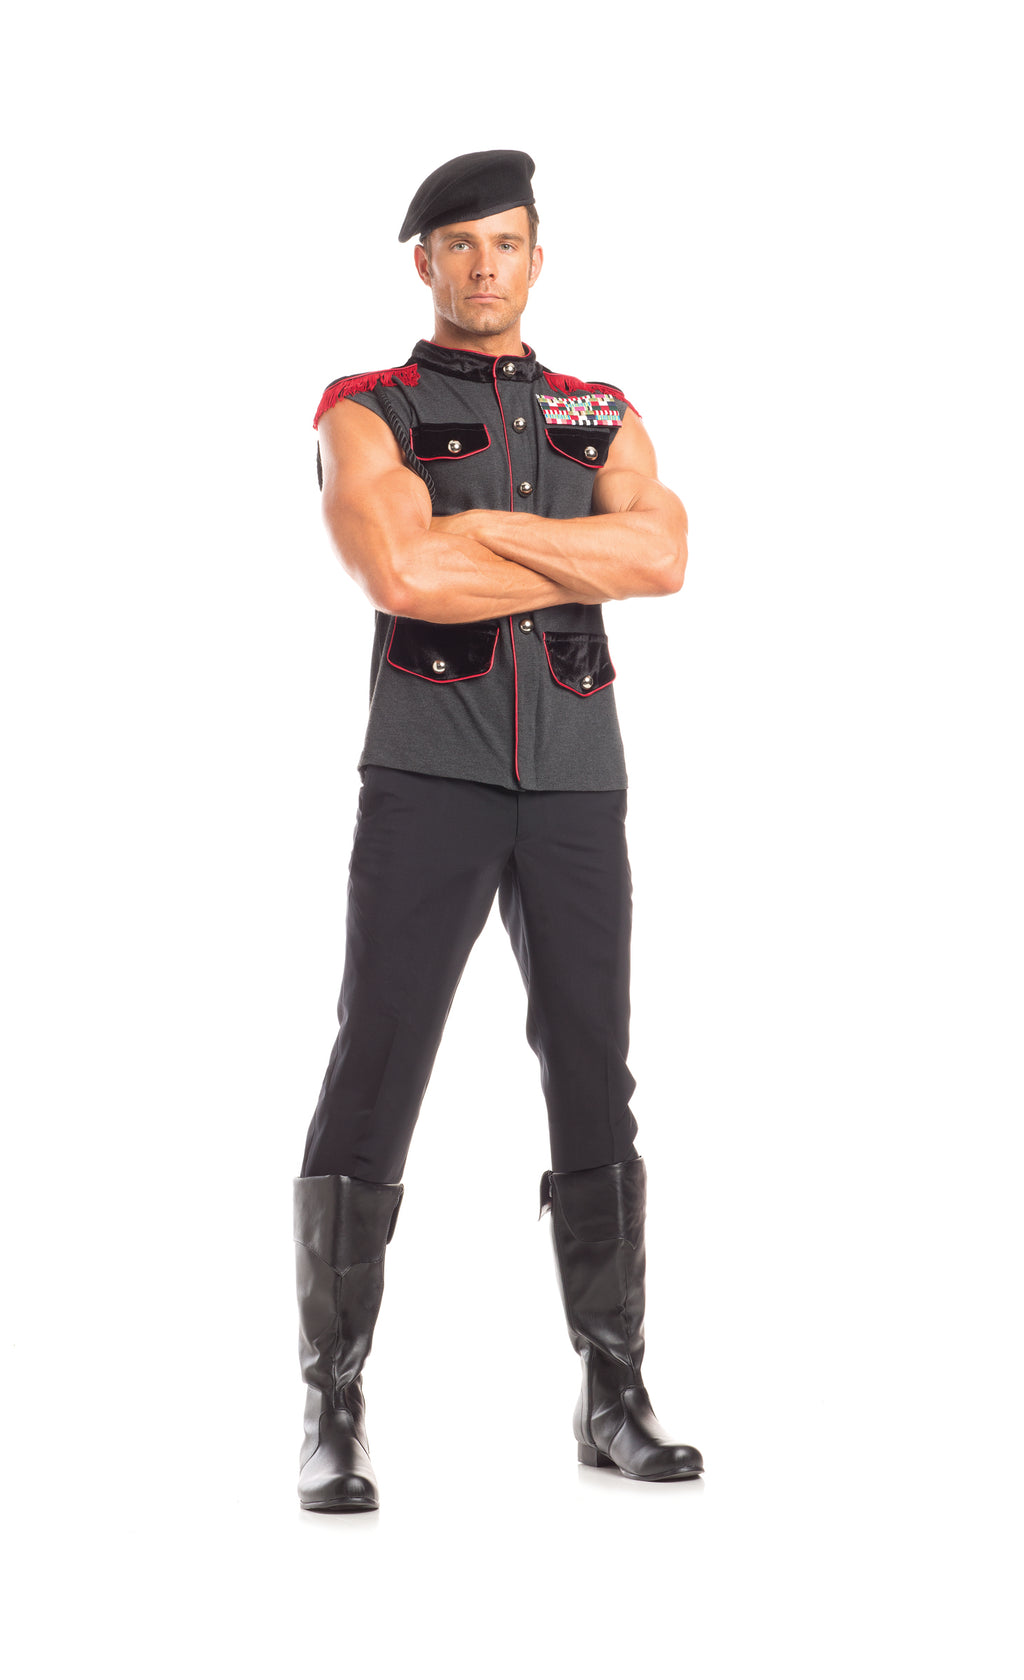 Adult-Men's-2-Piece-International-Officer-Halloween-Party-Costume